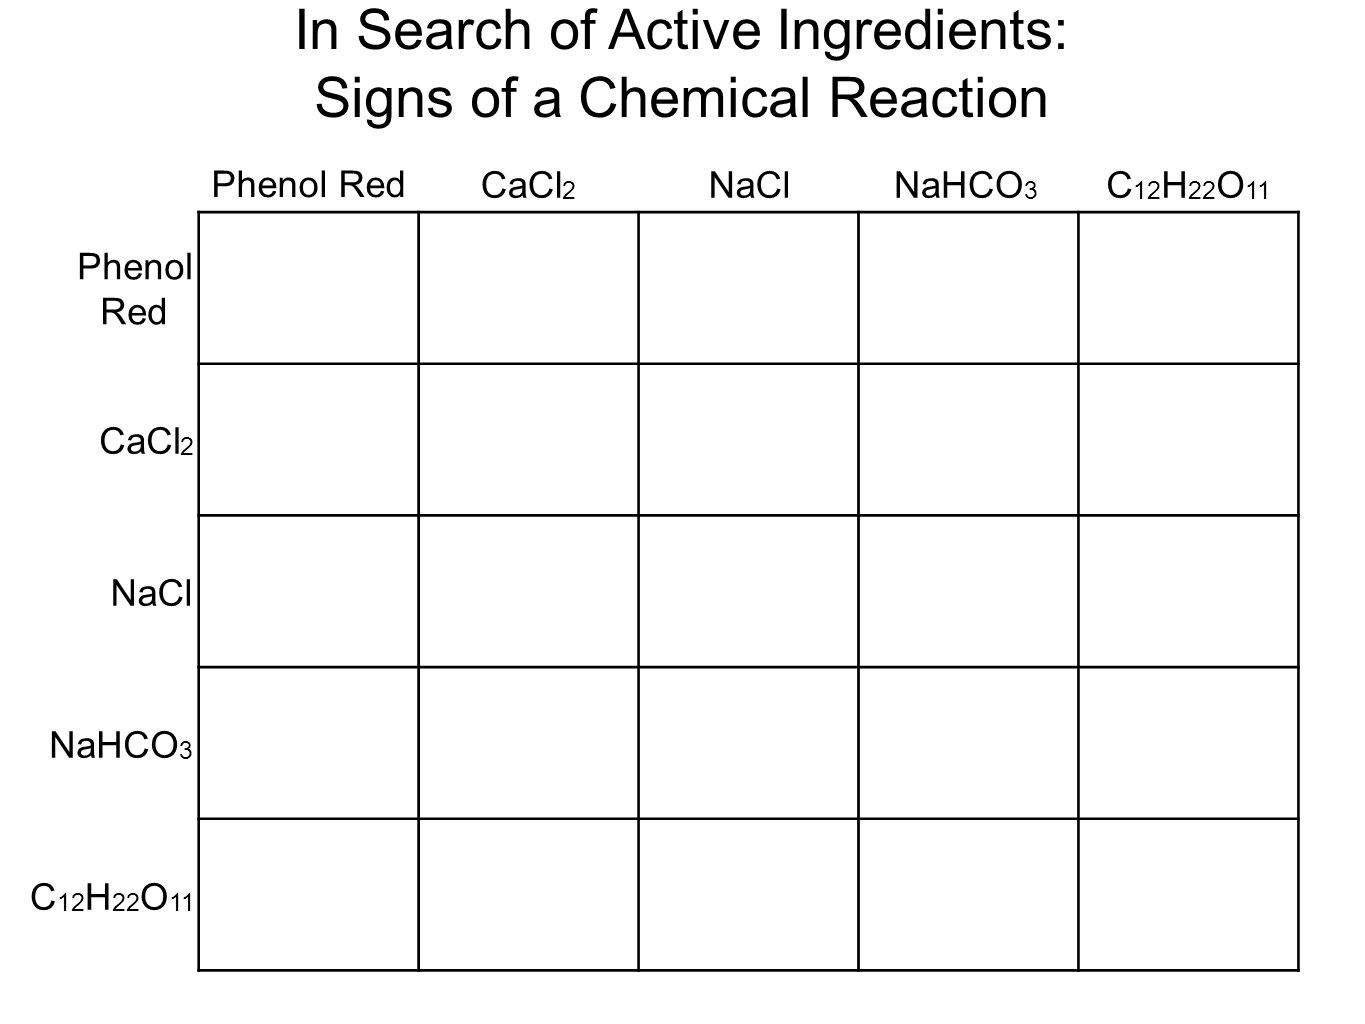 Phenol Red CaCl 2 Phenol Red CaCl 2 NaCl NaHCO 3 C 12 H 22 O 11 In Search of Active Ingredients: Signs of a Chemical Reaction